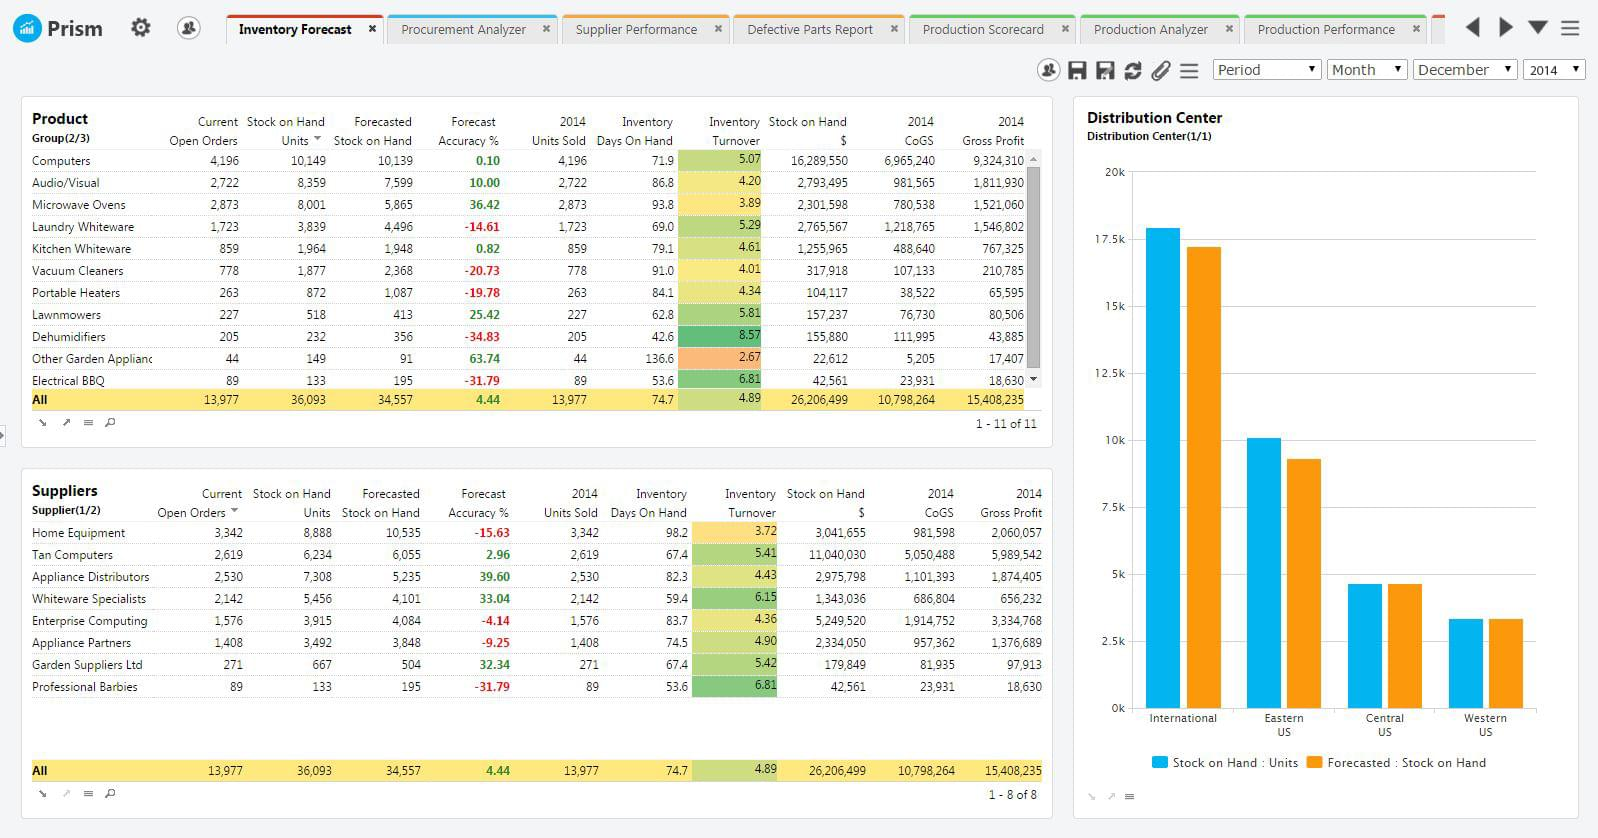 Halo supply chain analytics dashboard